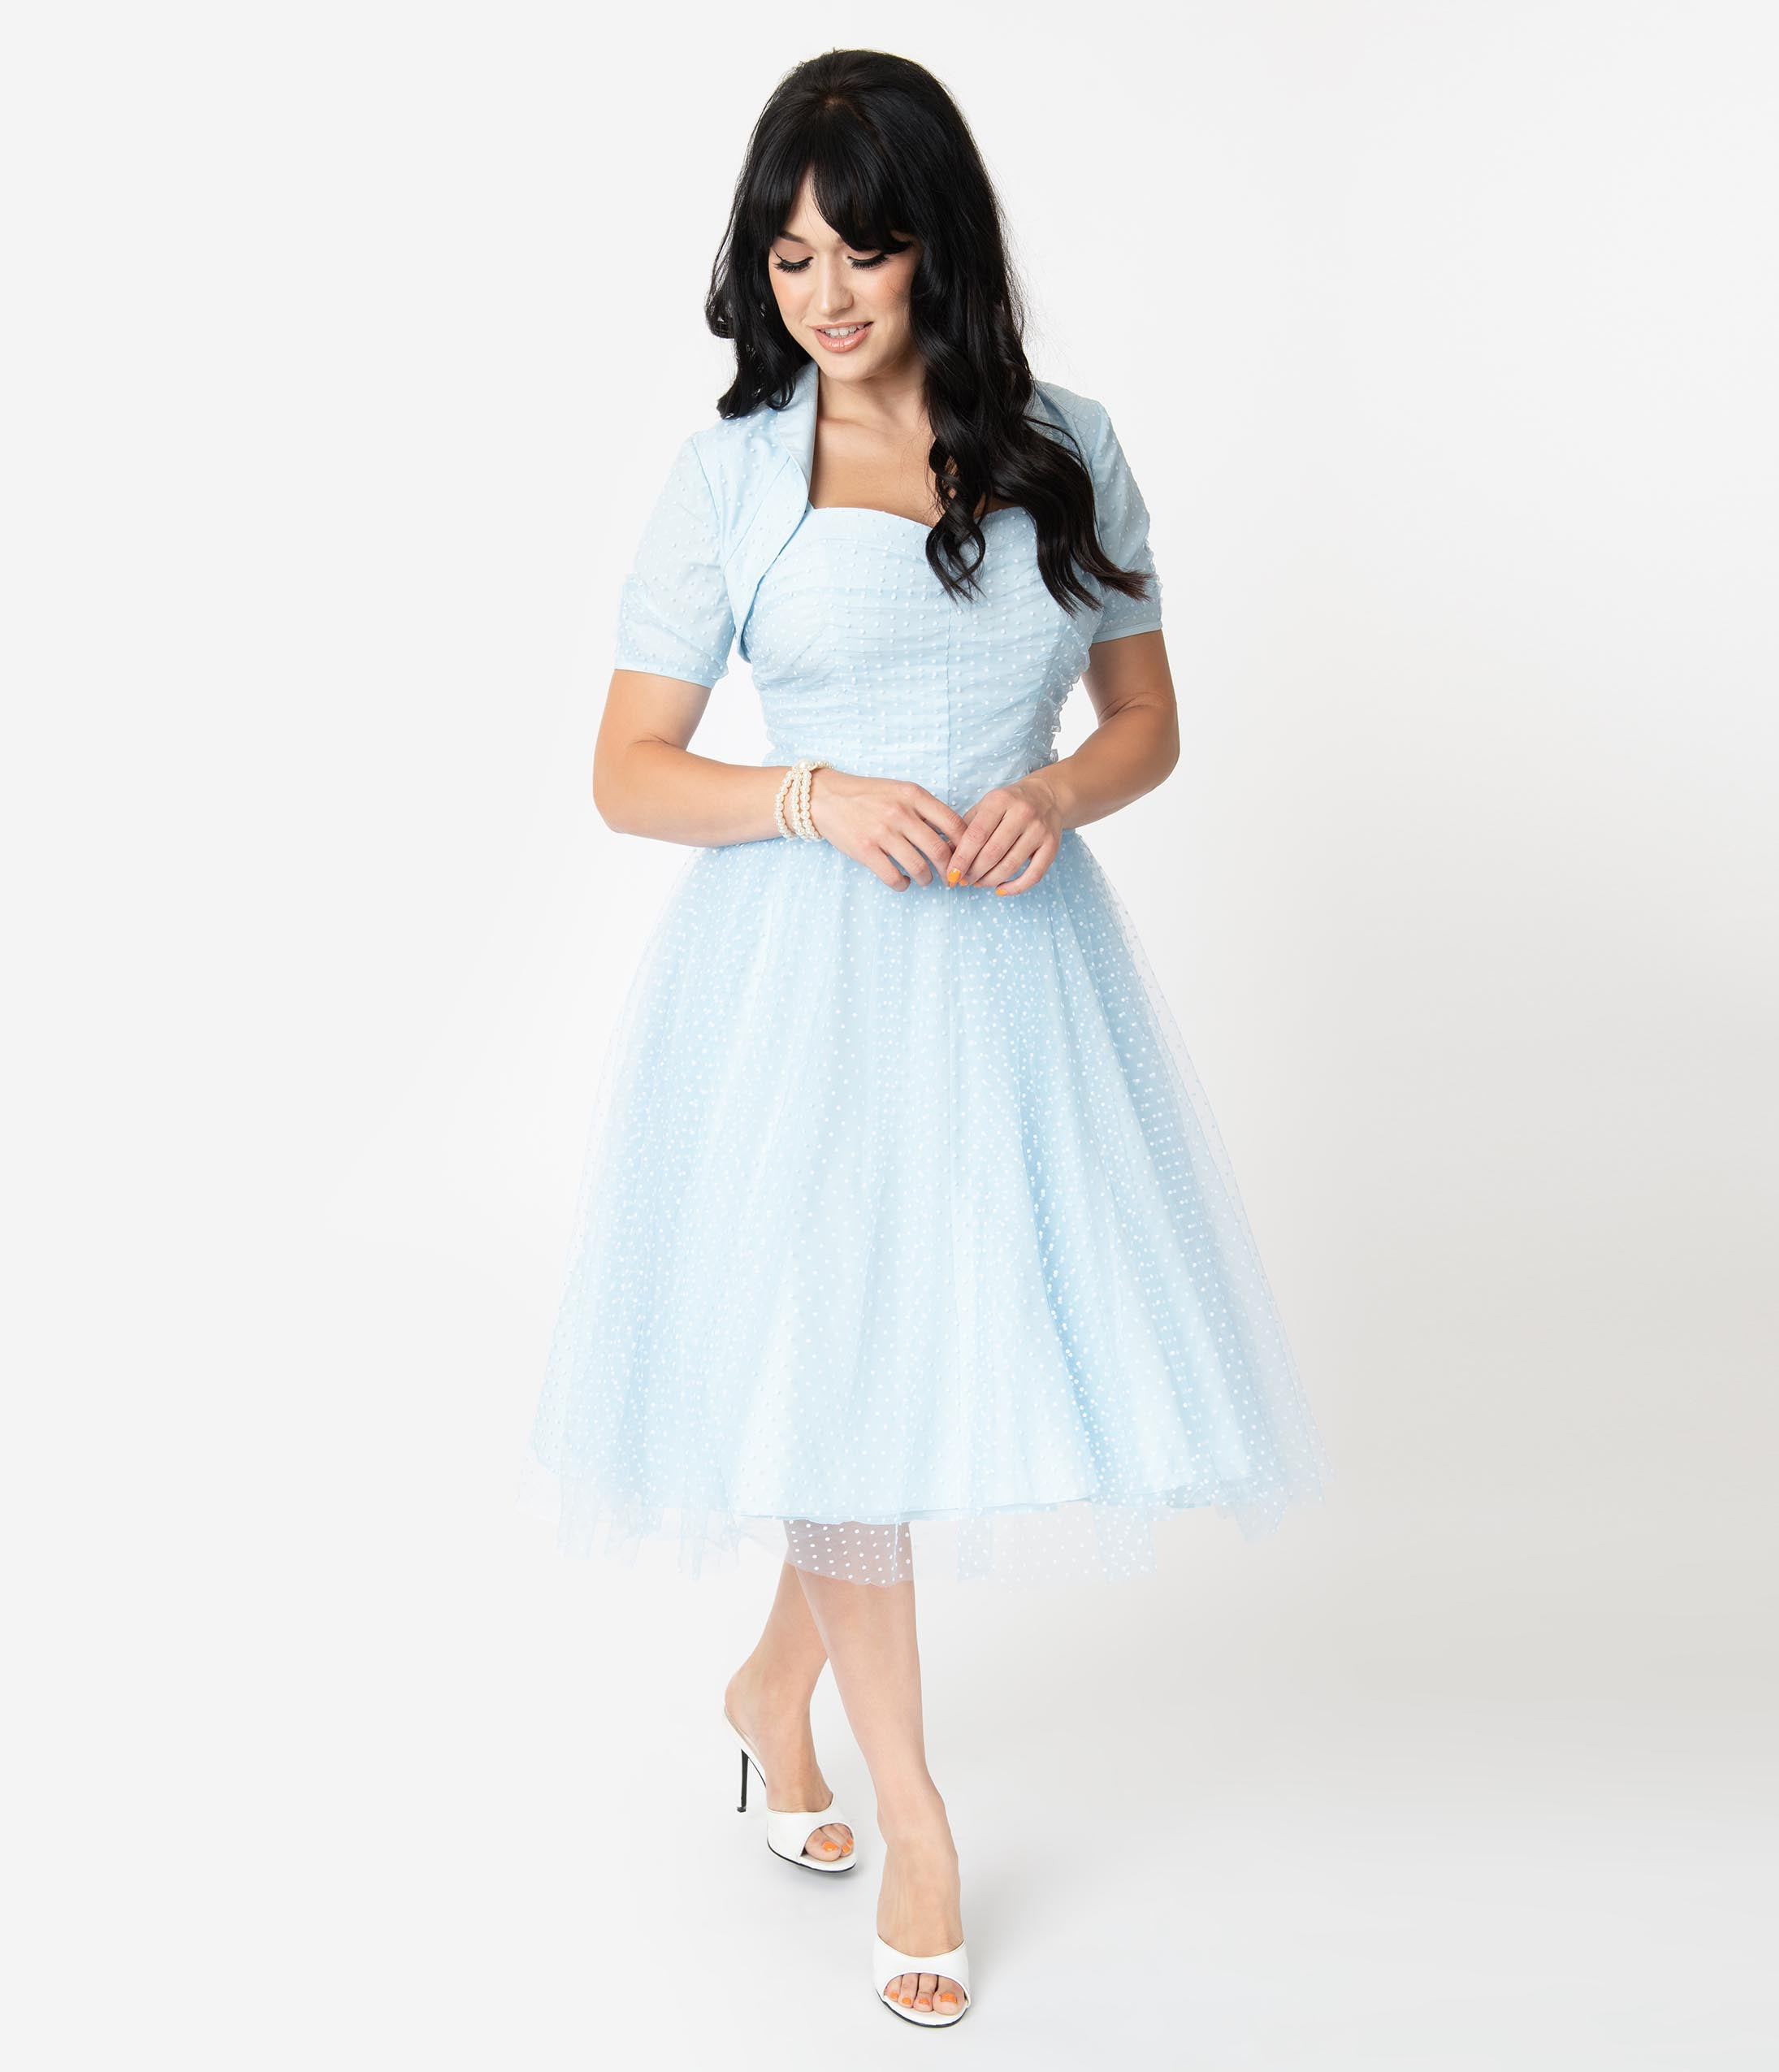 Vintage Evening Dresses and Formal Evening Gowns I Love Lucy X Unique Vintage Light Blue Honeymoon Swing Dress $148.00 AT vintagedancer.com